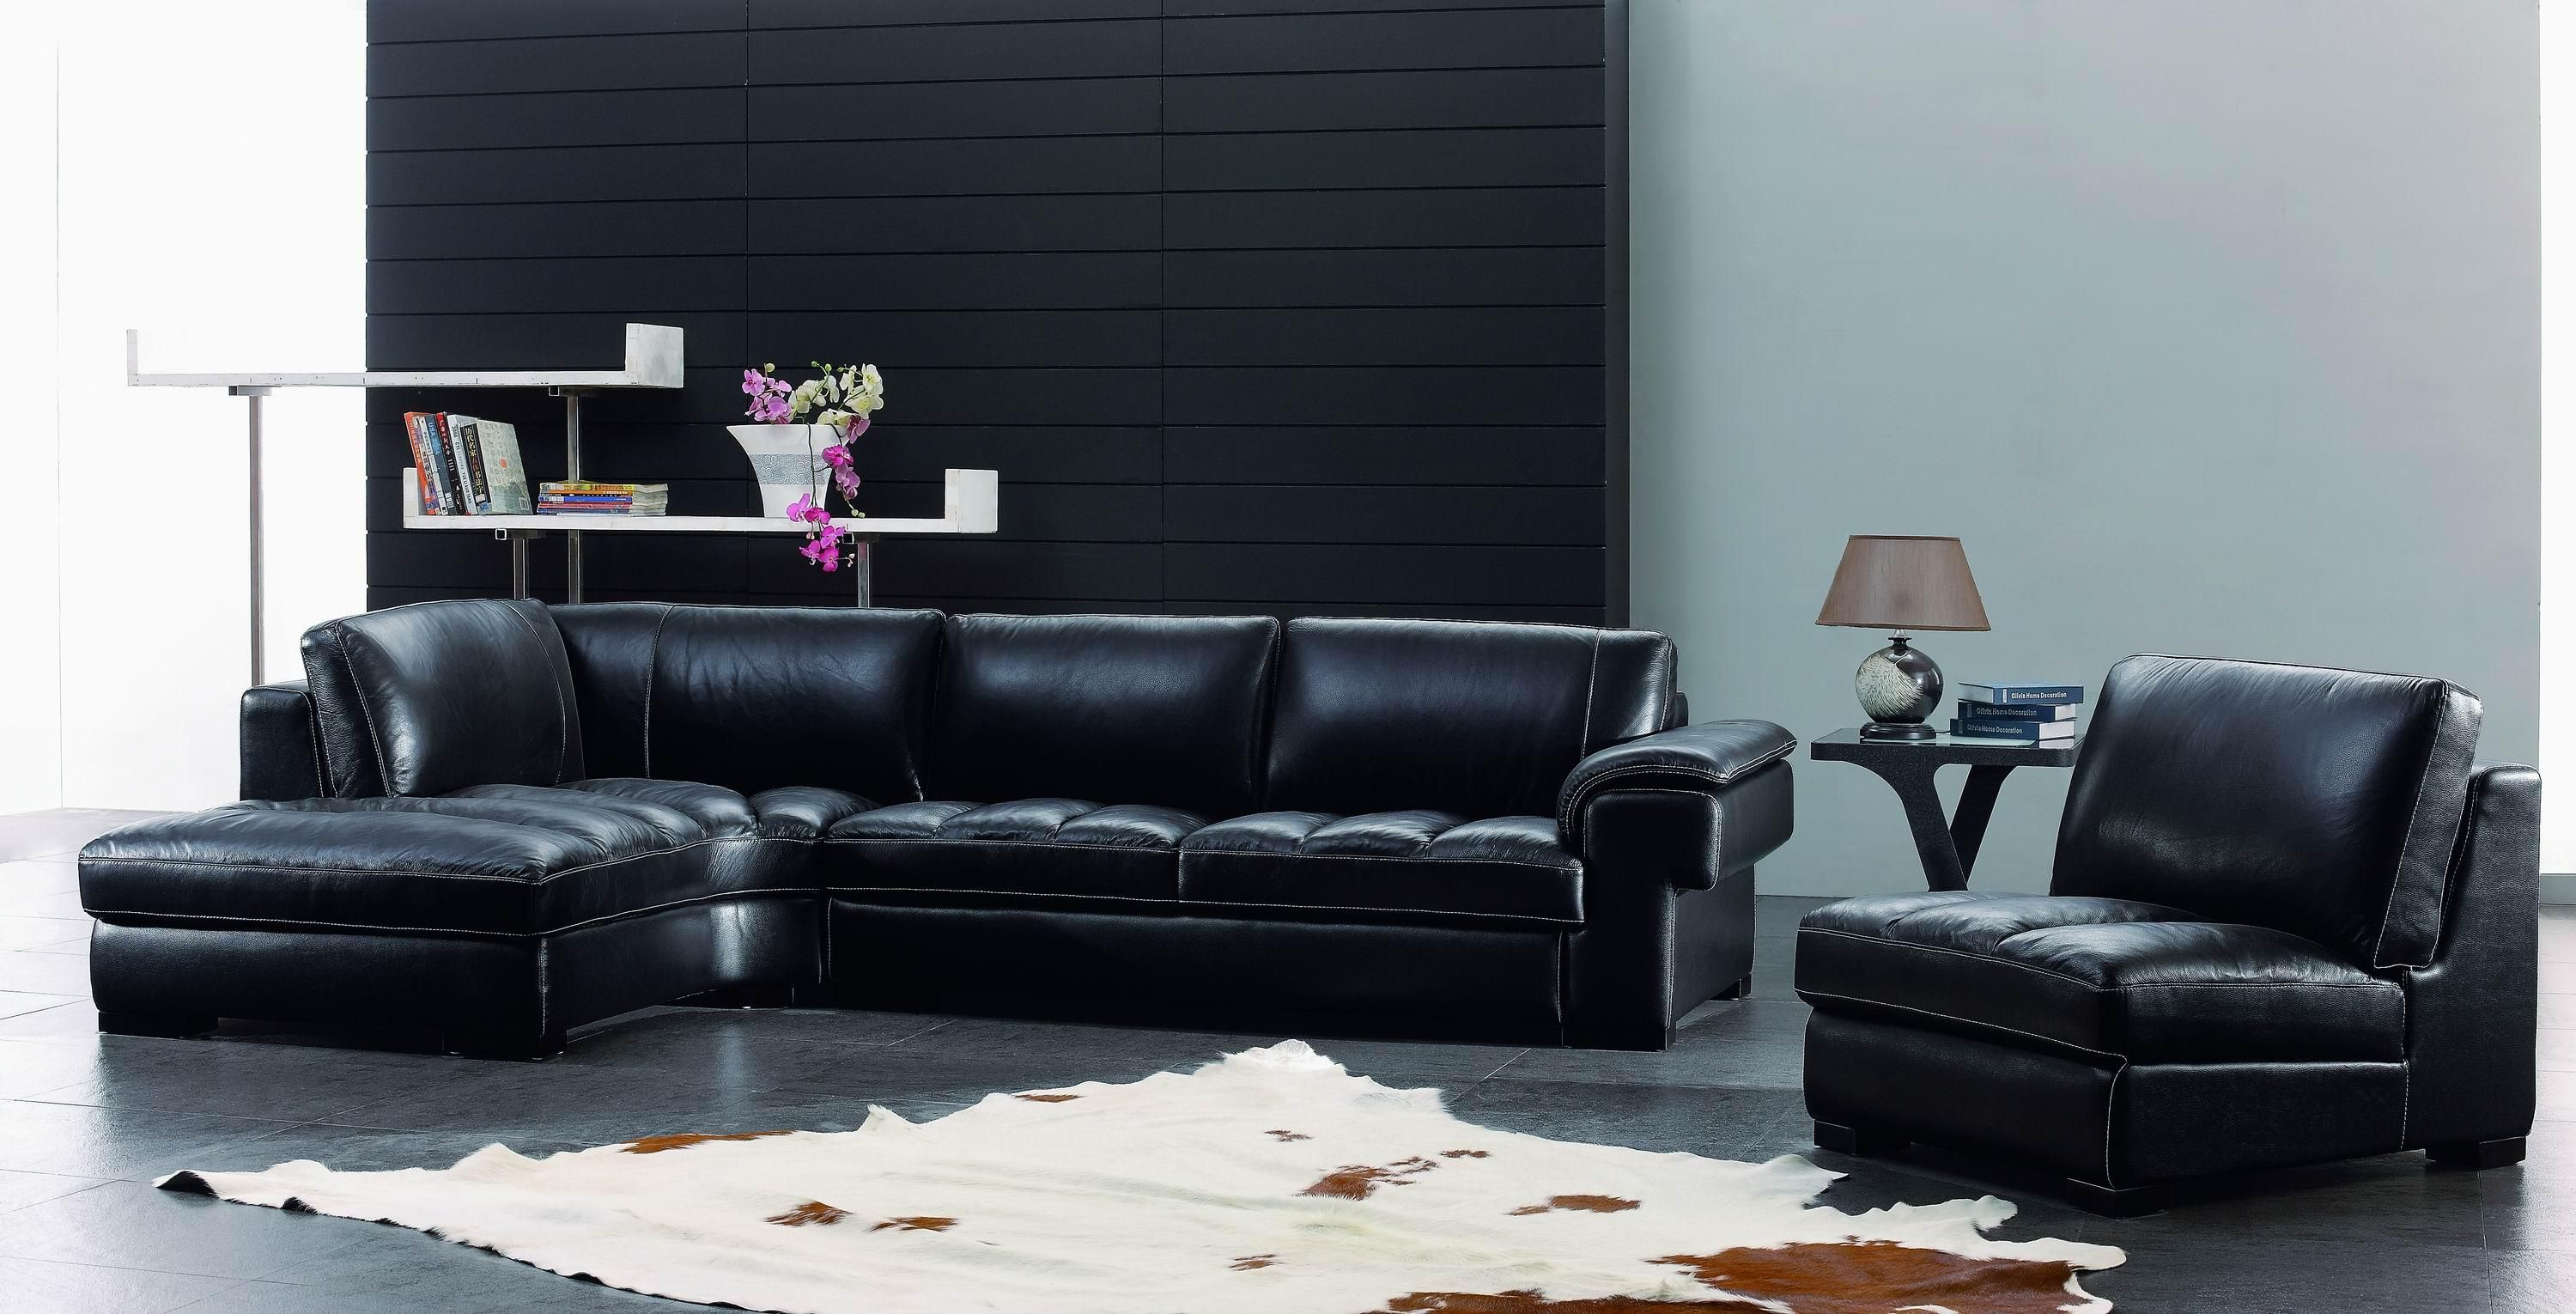 Living Room Design With Black Leather Sofa Fair L Shaped Black Leather Couch Connectedblack Wall Theme And Review